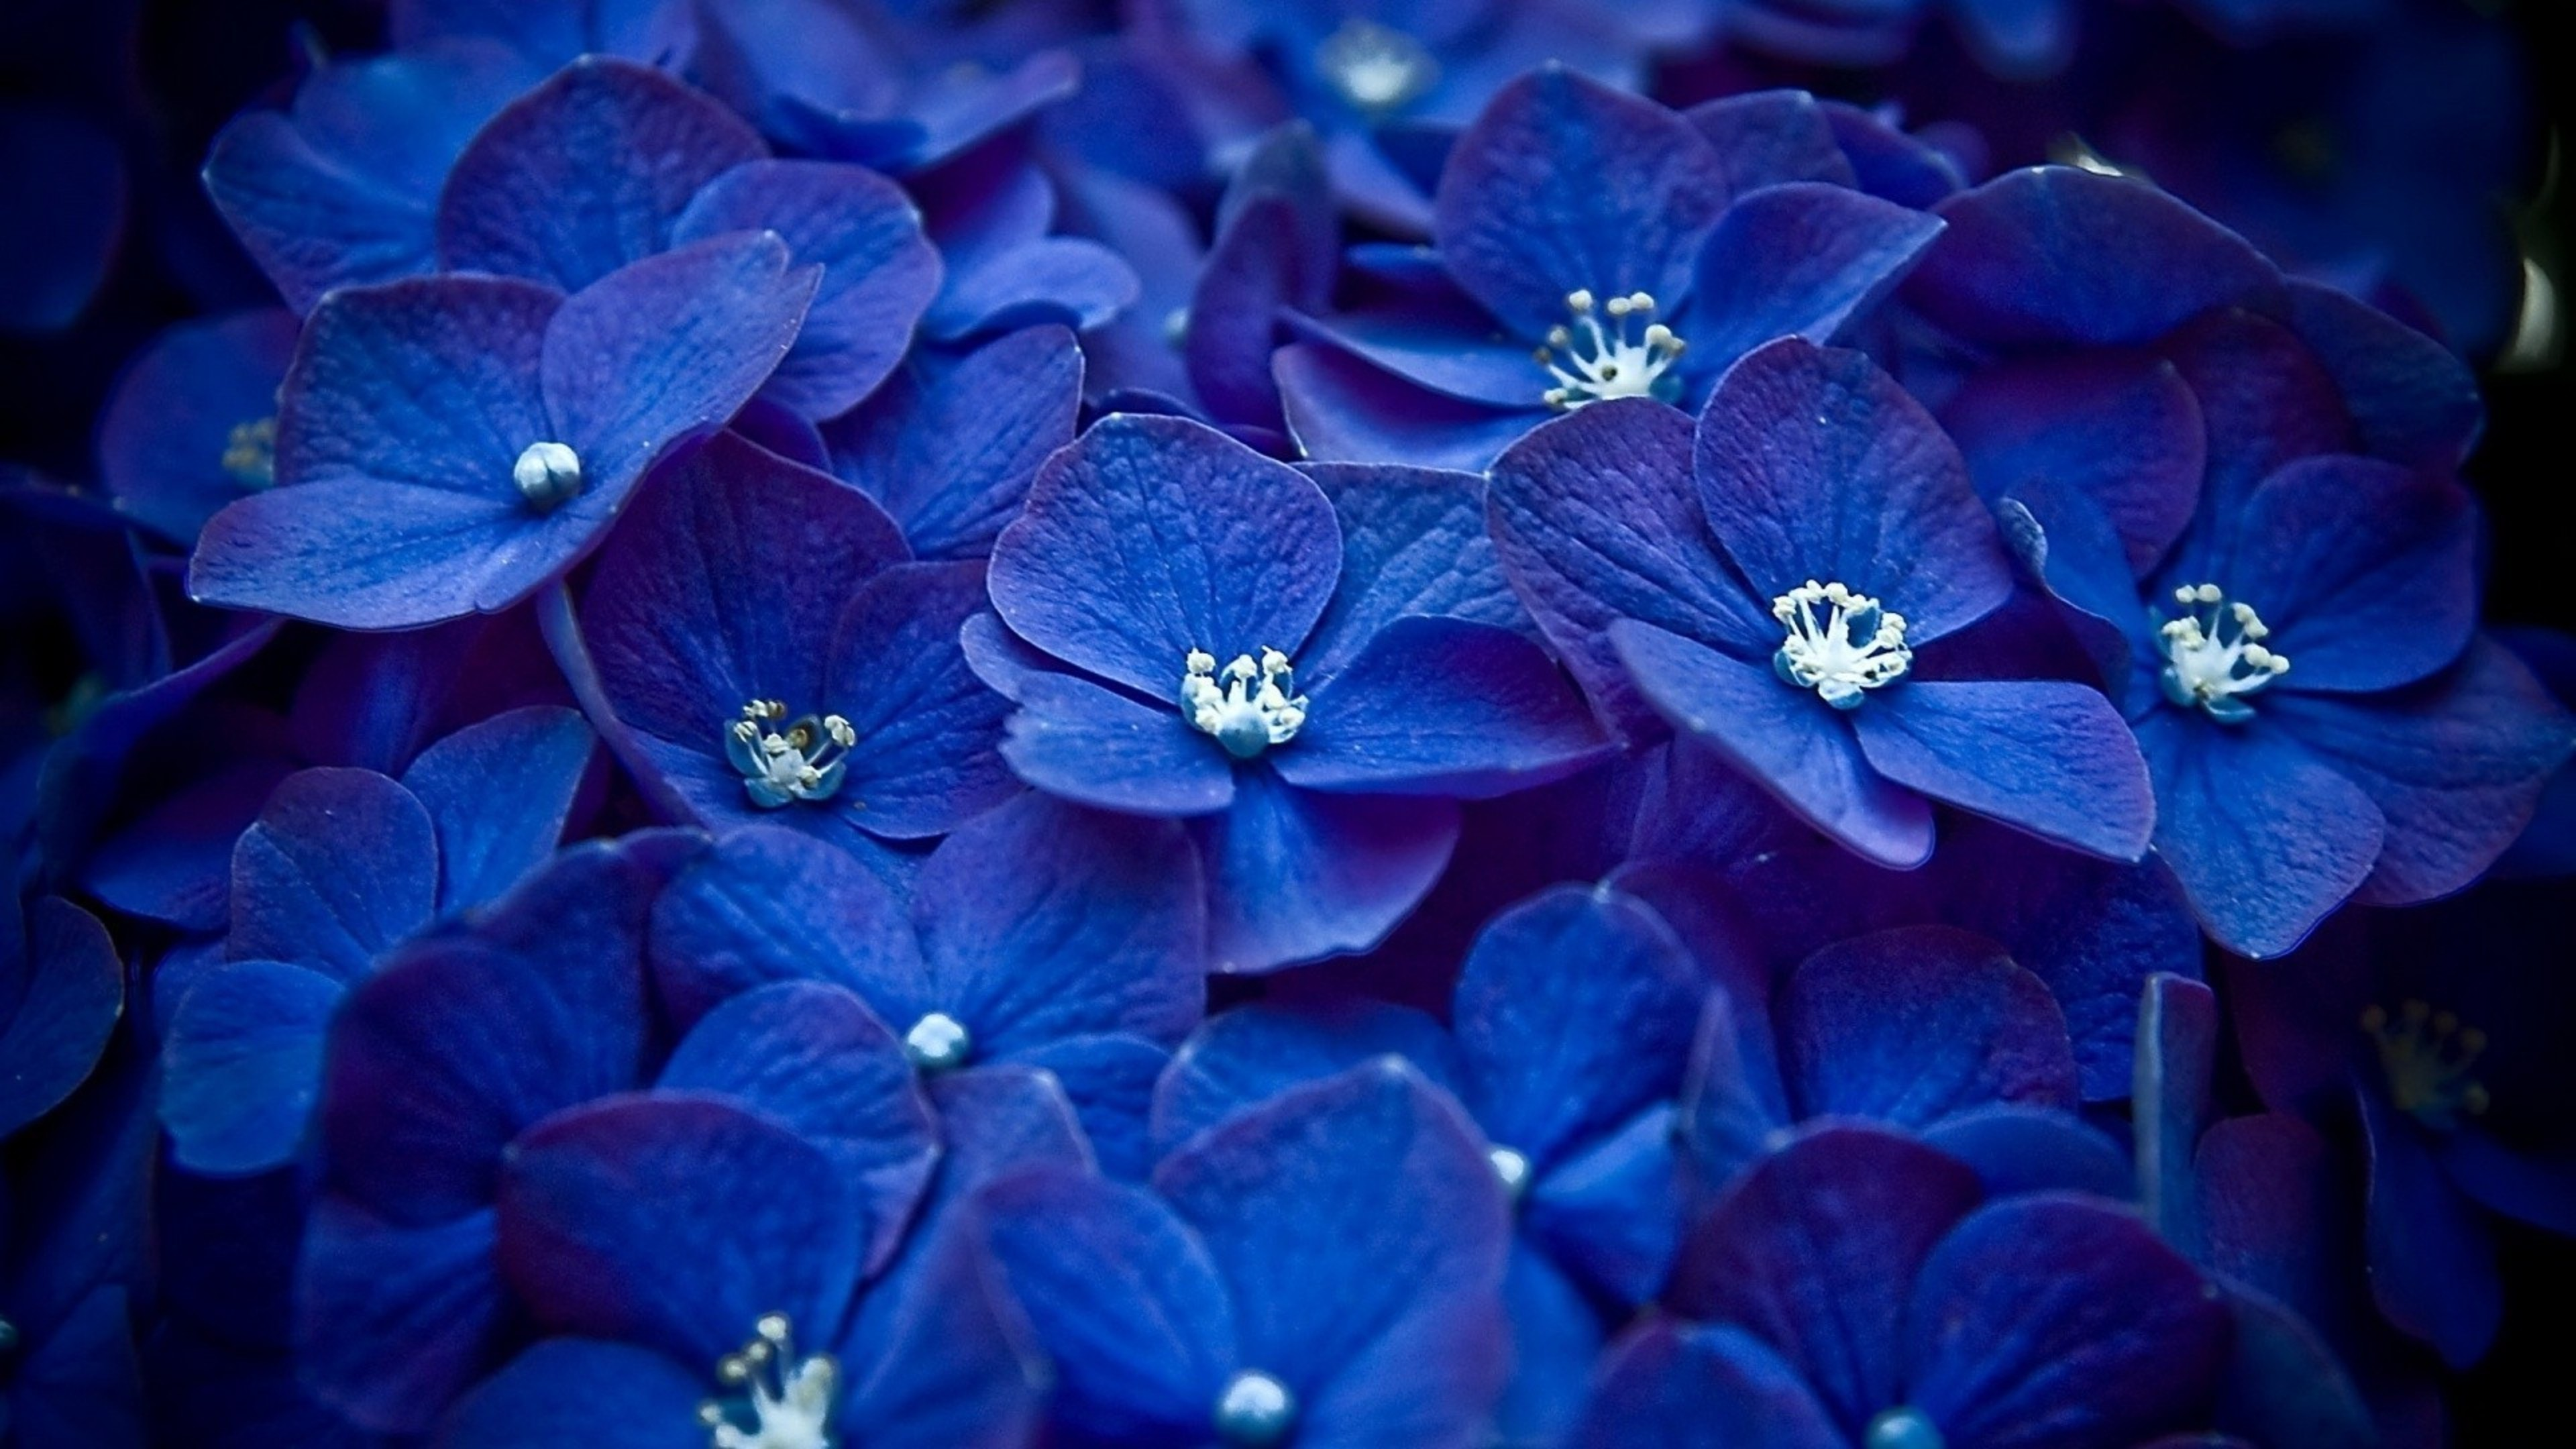 1280x1024 hydrangea blue flower 1280x1024 resolution hd 4k